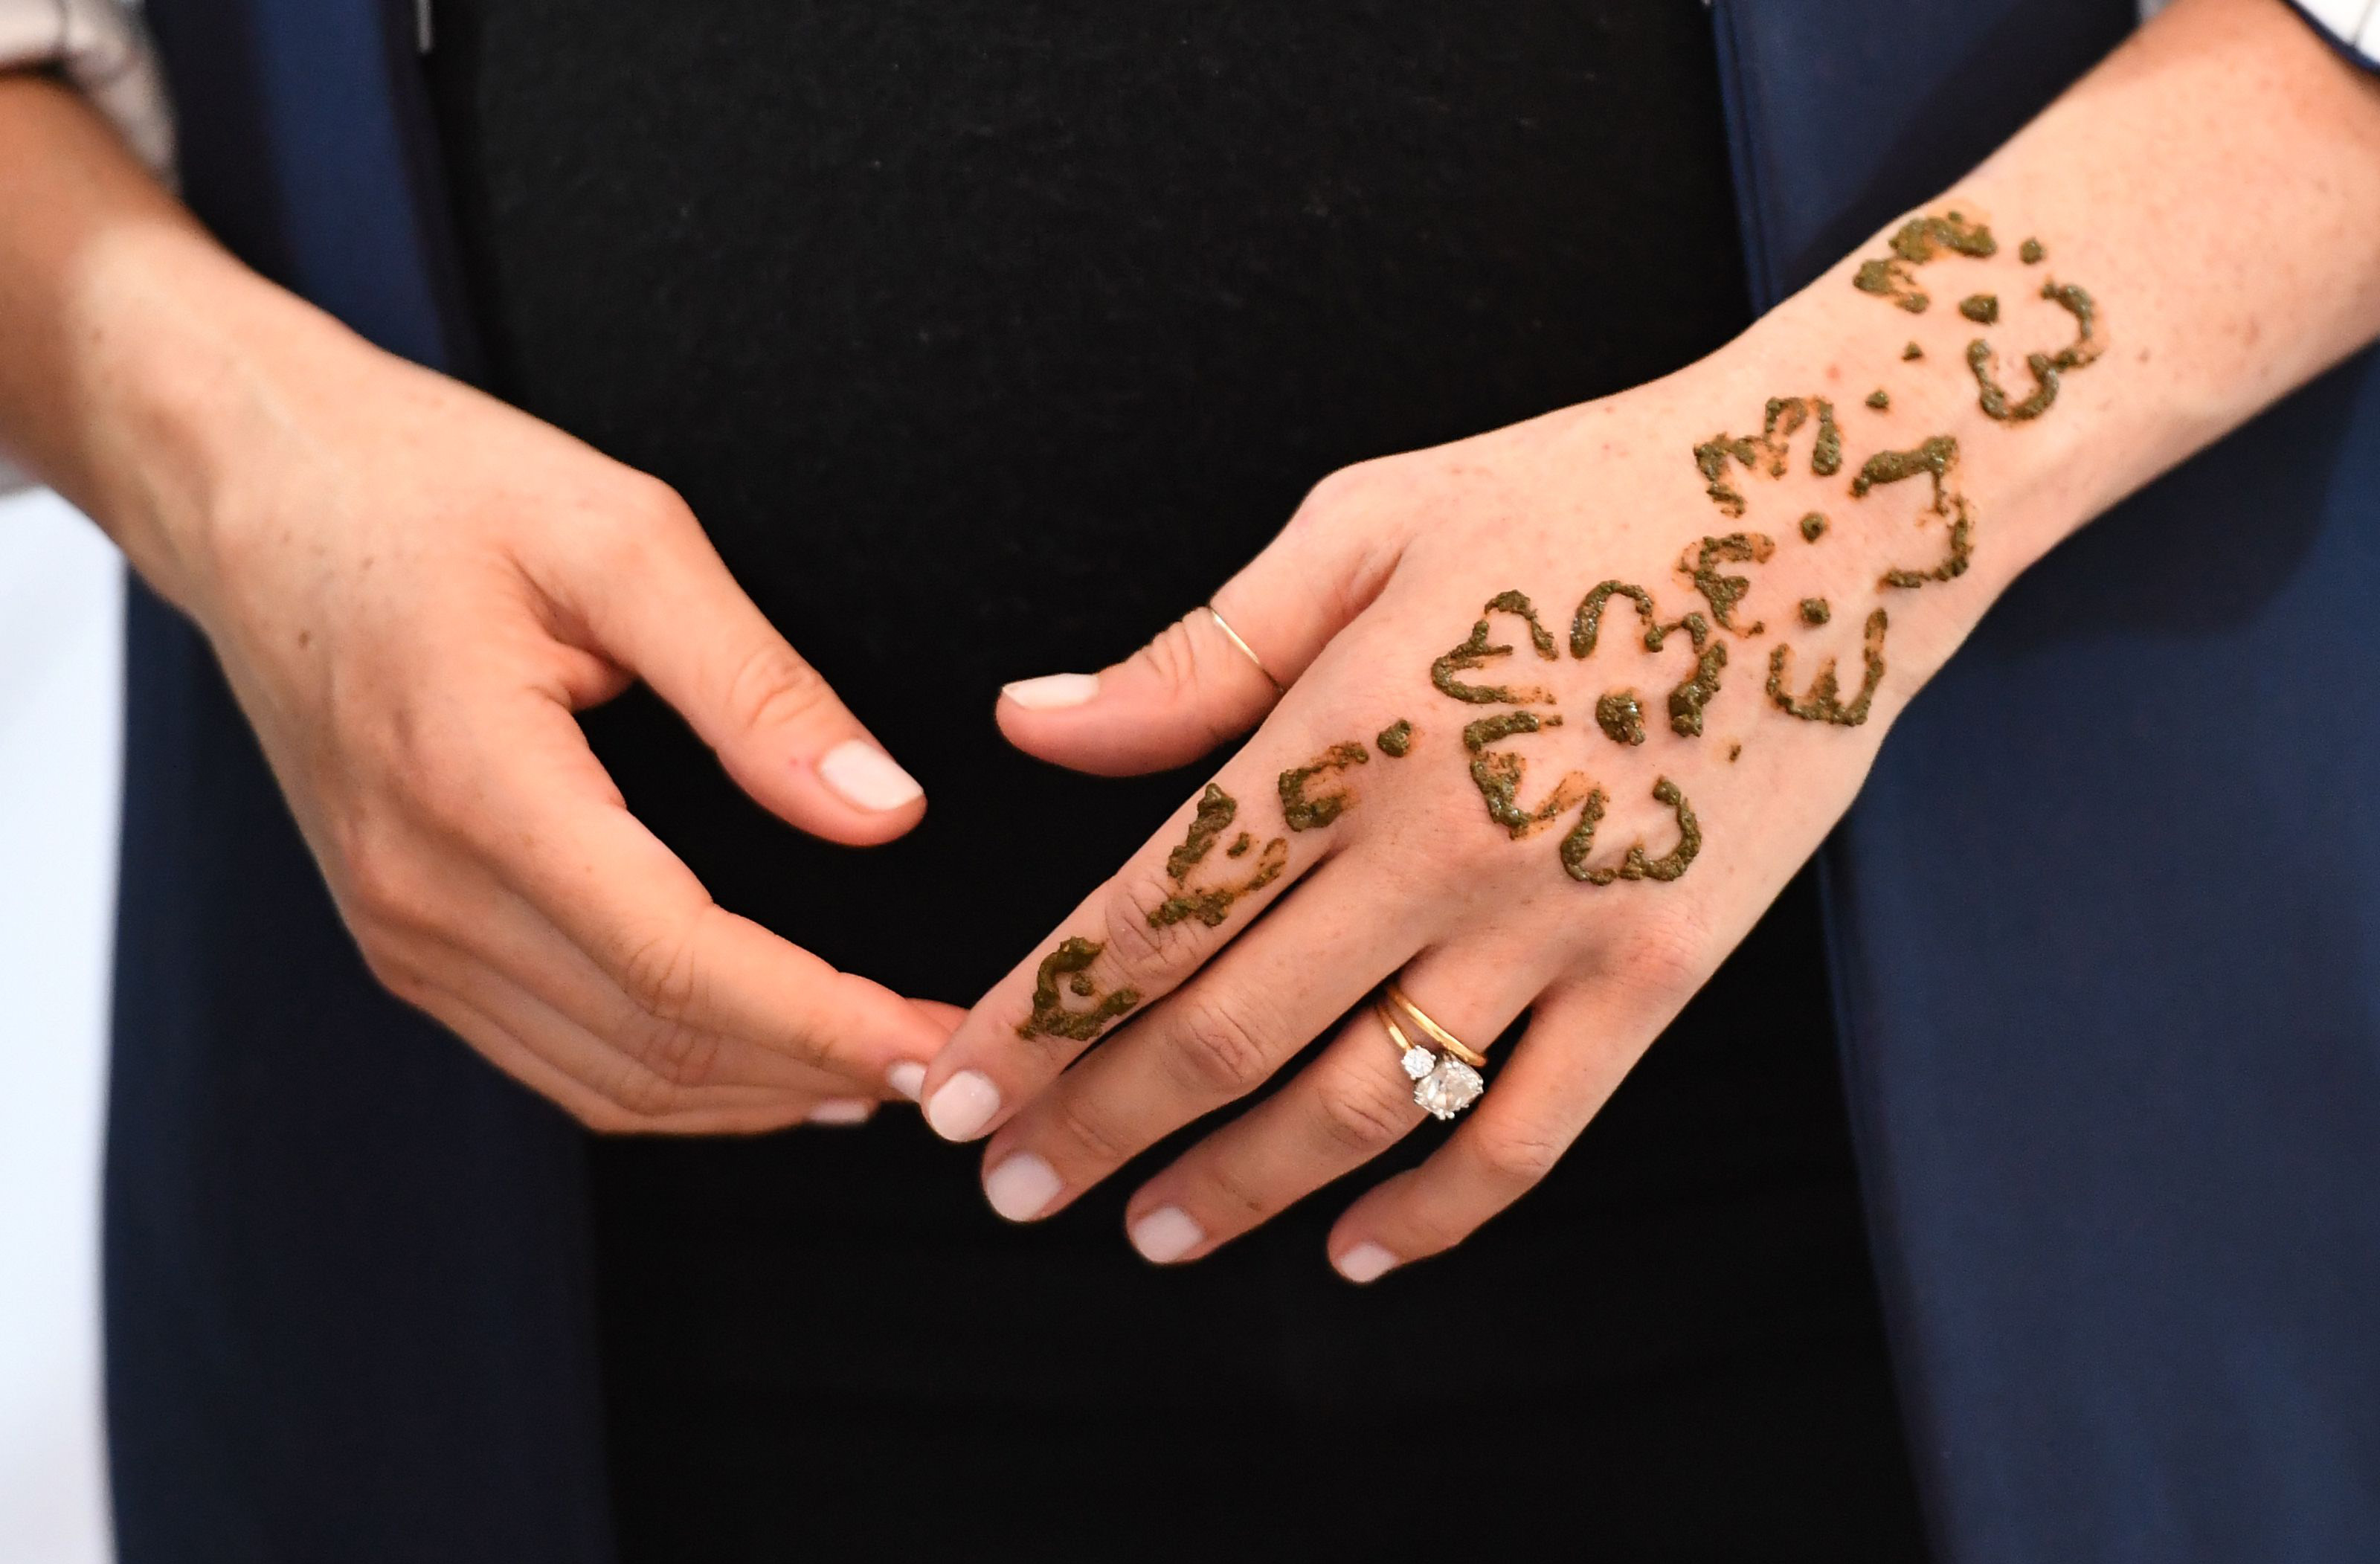 b7228d716 In Moroccan culture, the tattoo is designed to bring good luck and to  celebrate upcoming big occasions, such as an impending birth. And with the  Duchess of ...